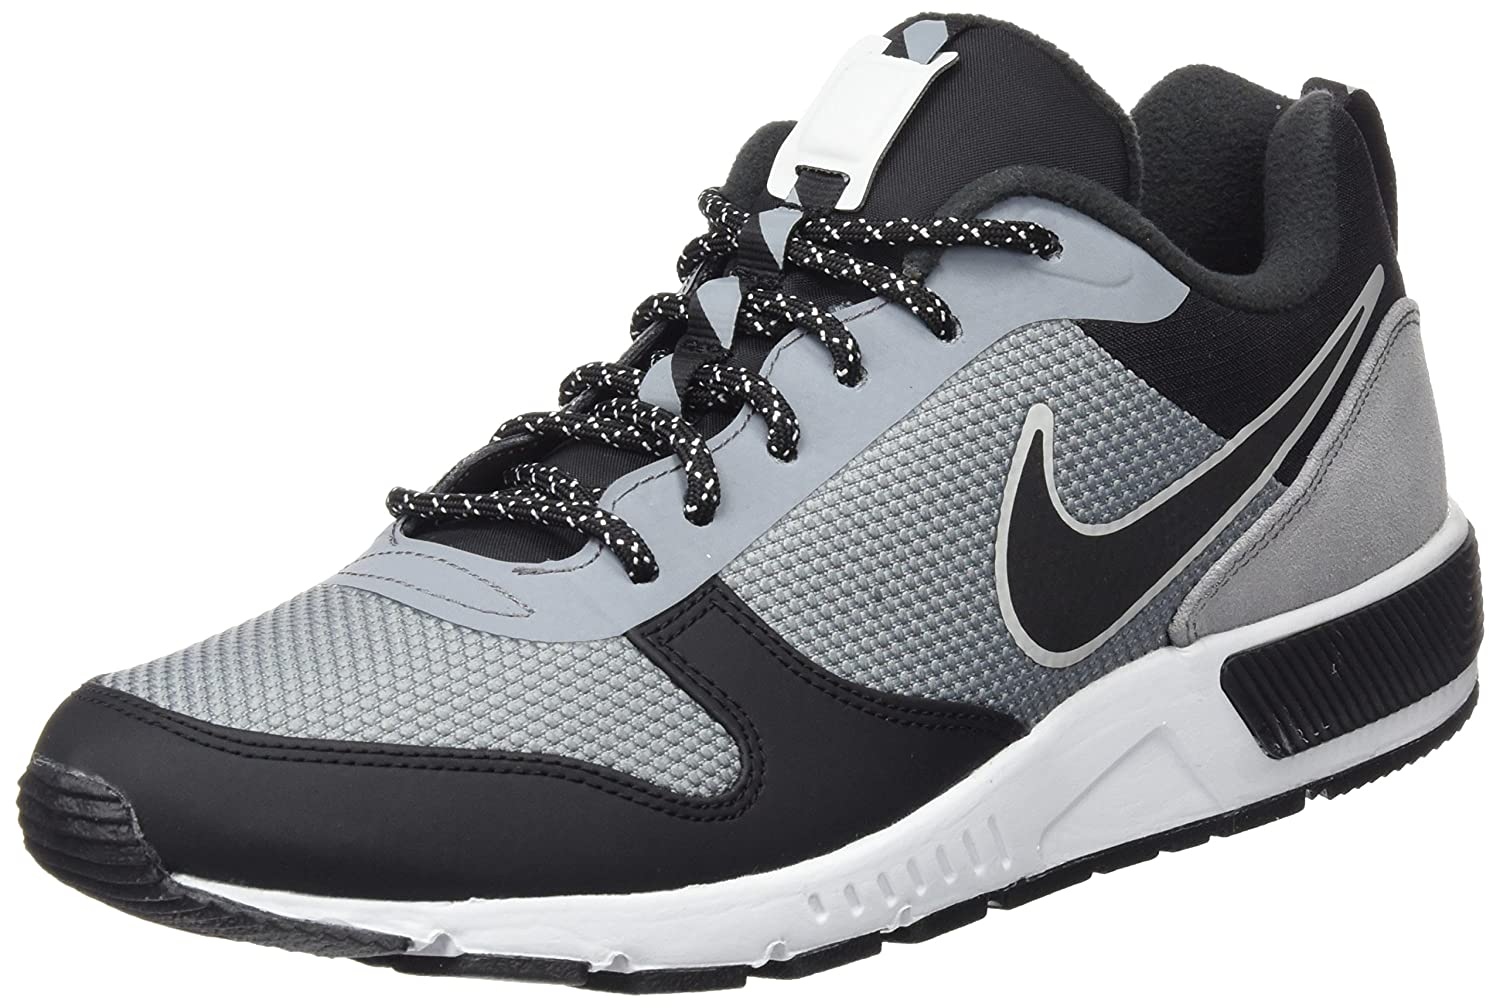 the latest 03d33 9e0c3 Amazon.com   Nike Nightgazer Trail Men s Running Shoes Size US 10 M Cool  Gray Black 916775-001 Mens   Trail Running